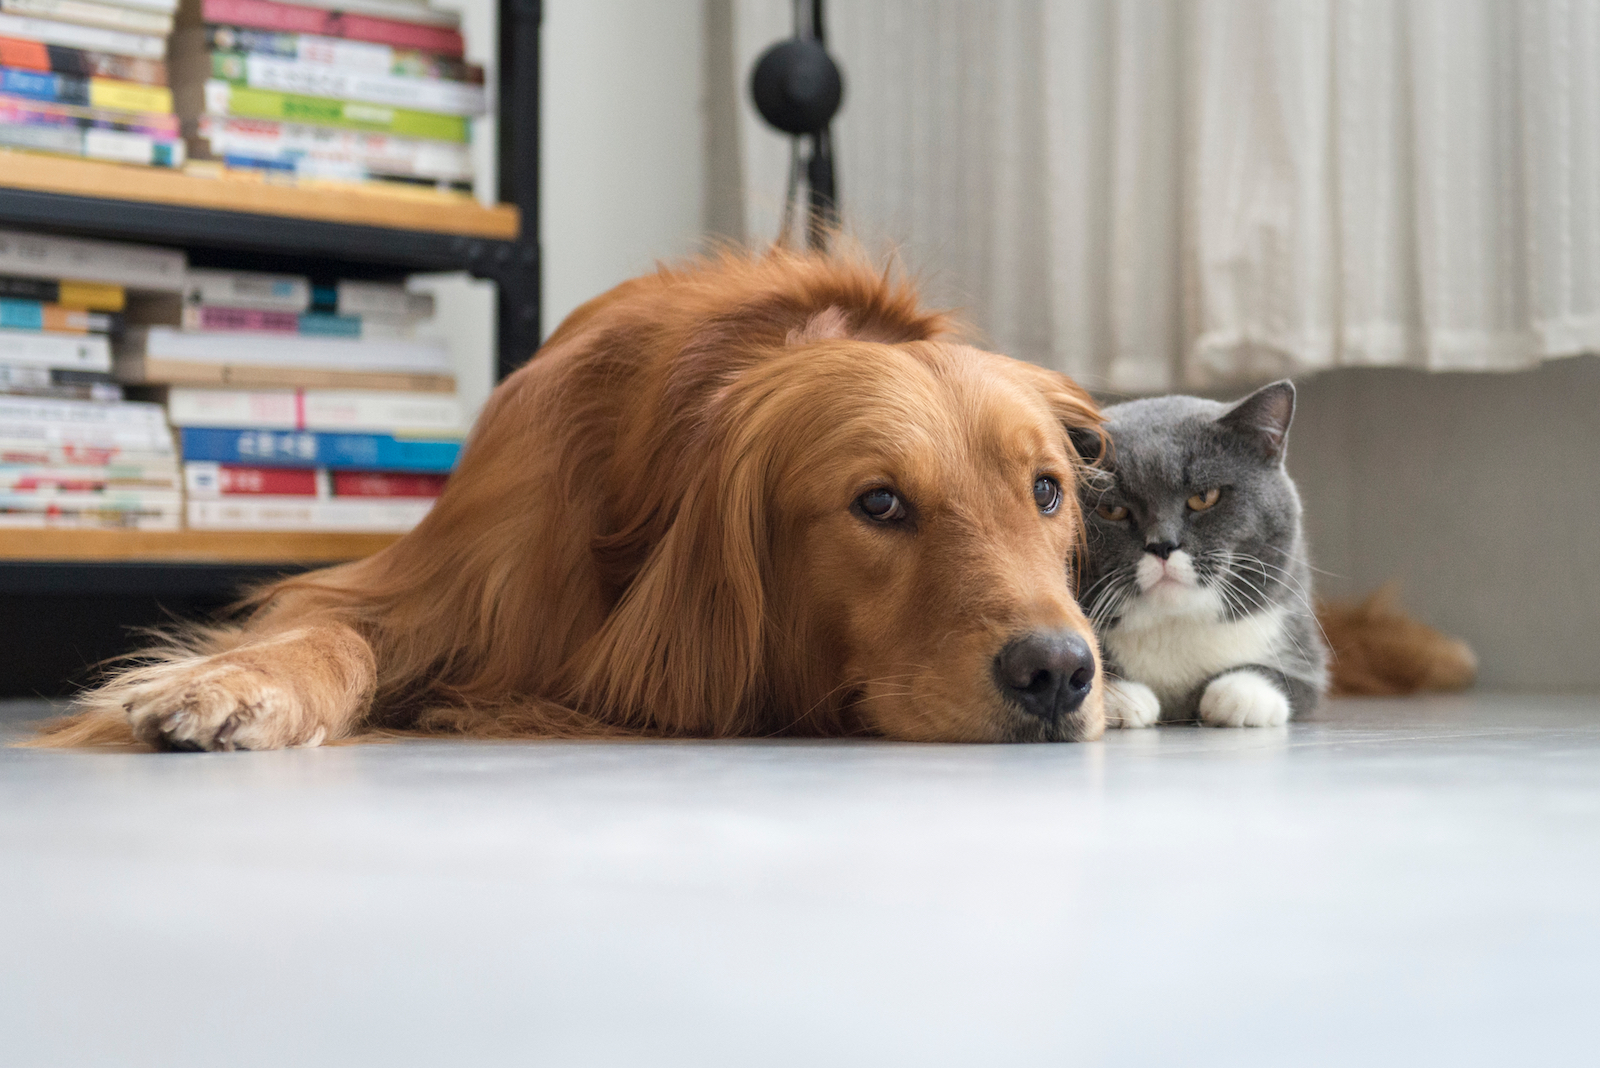 Do You Know How to Spot Diabetes in Dogs and Cats?